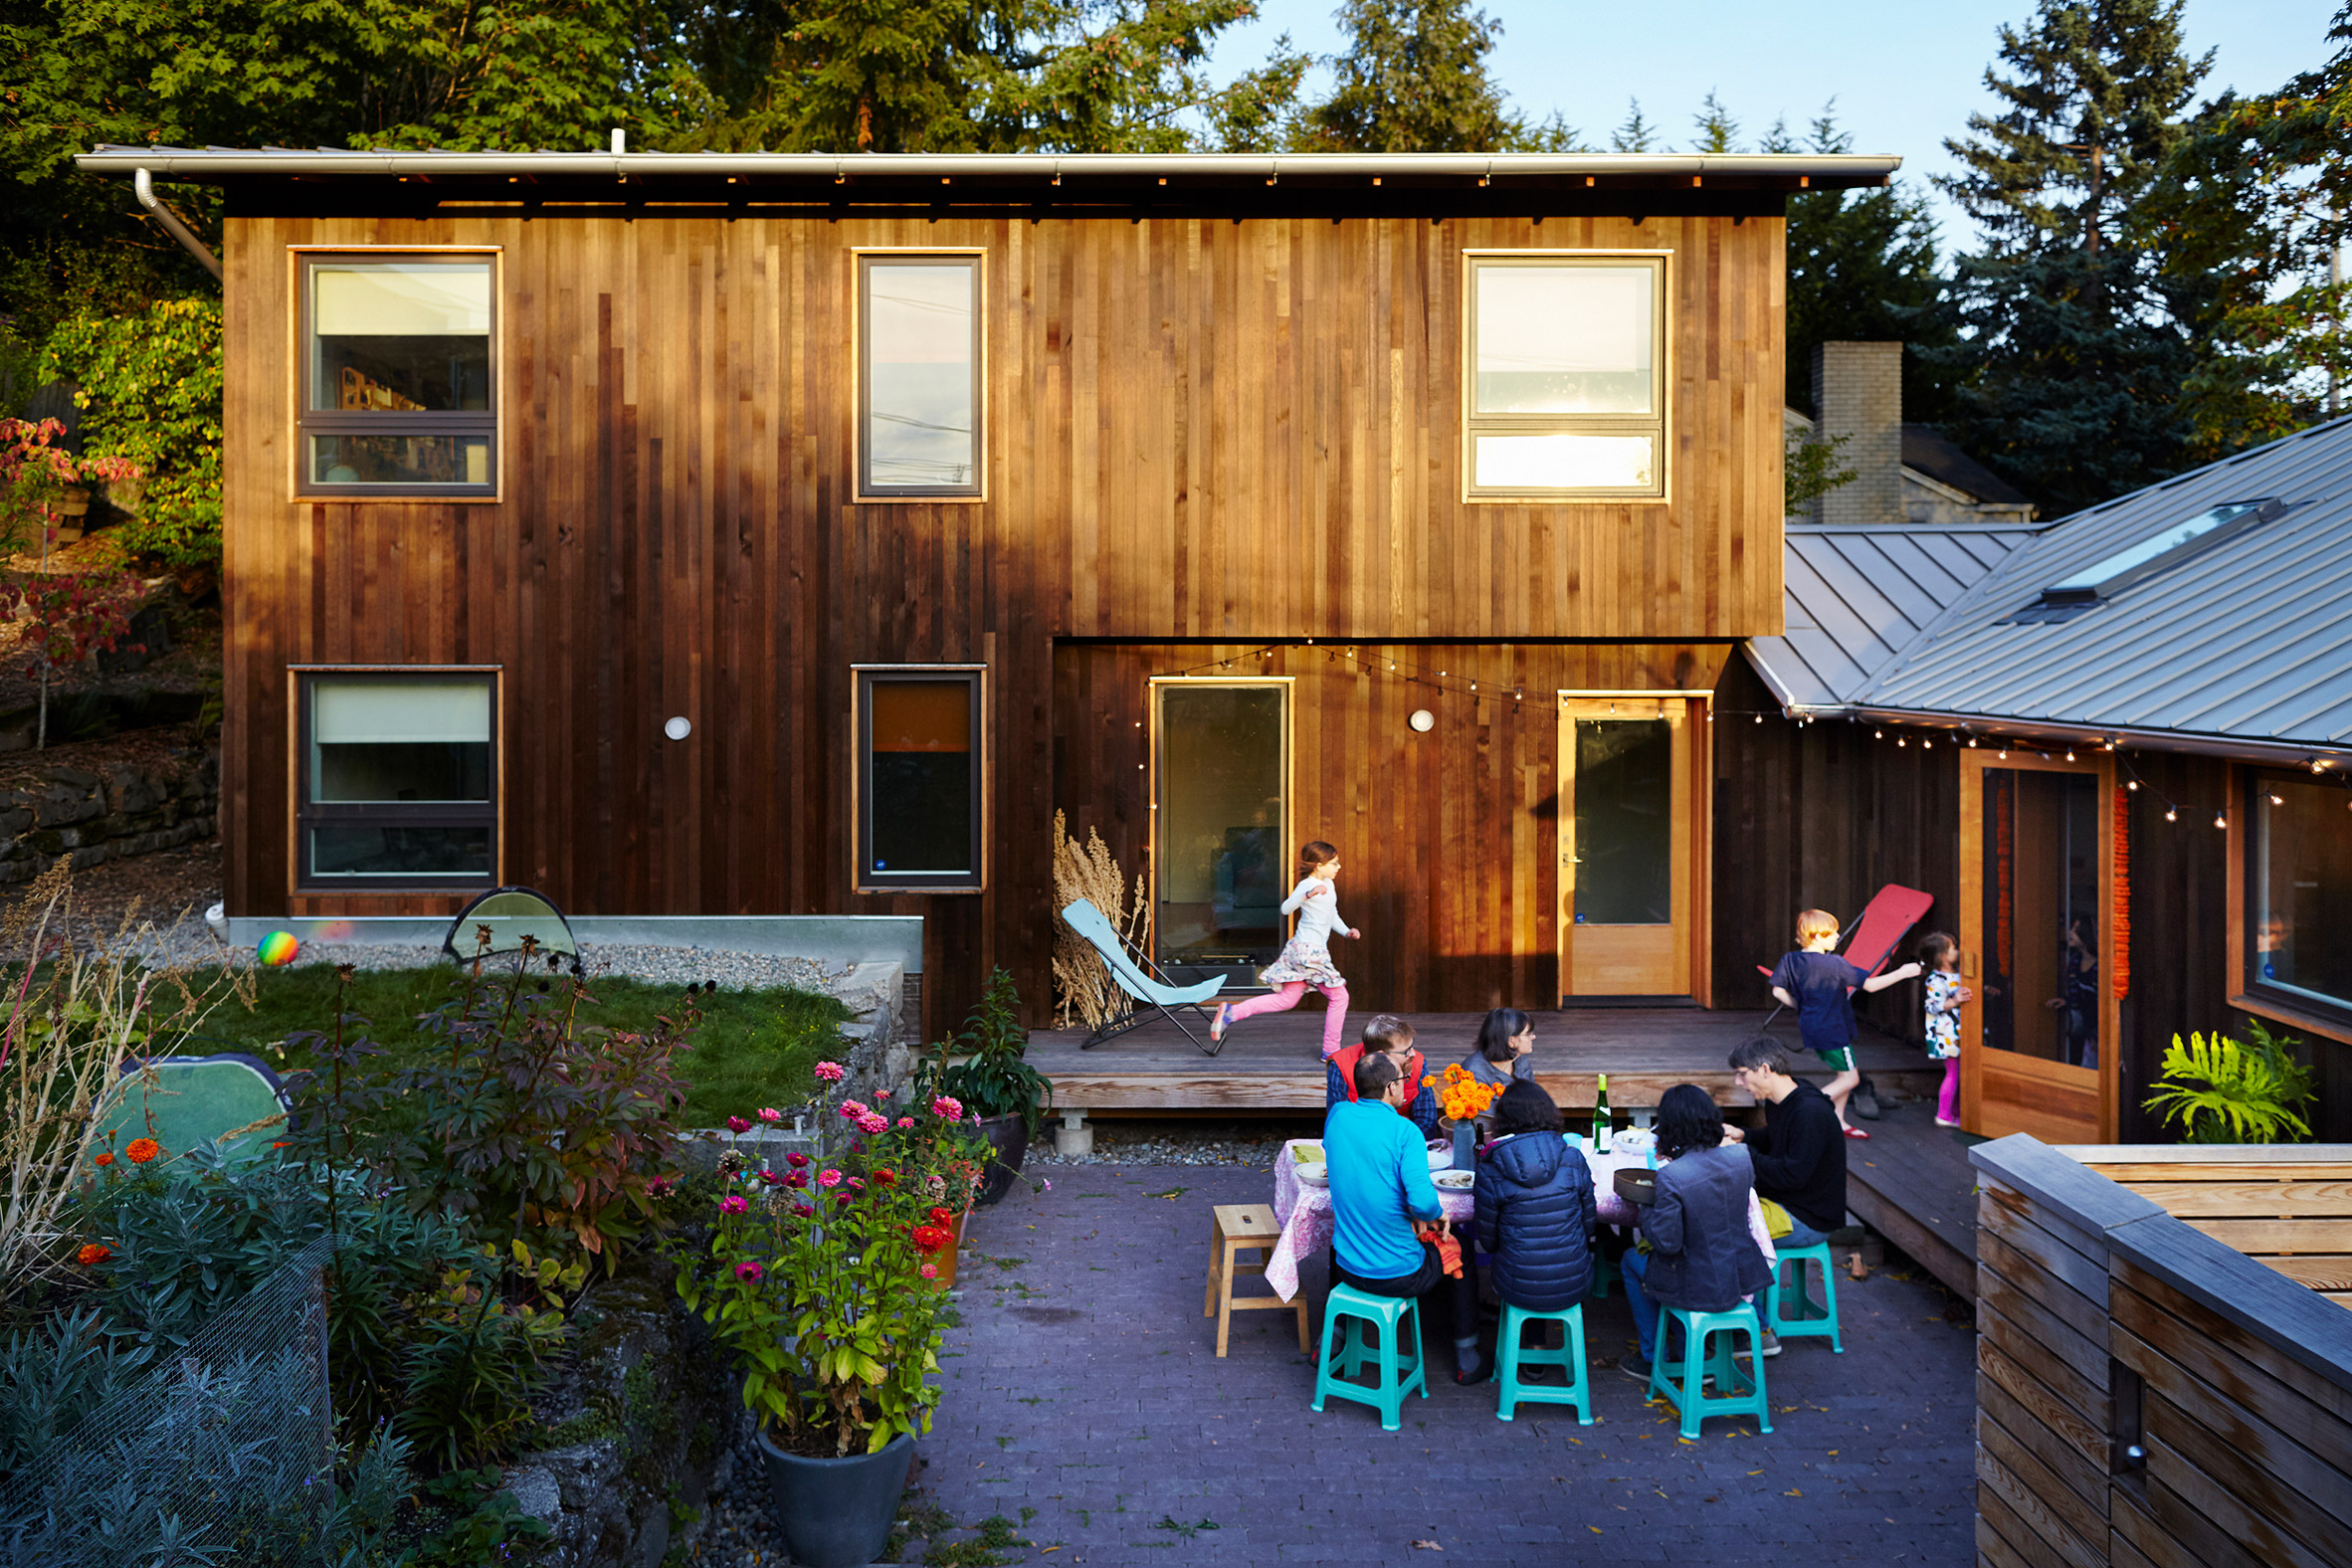 Local firm Fivedot designed the bungalow